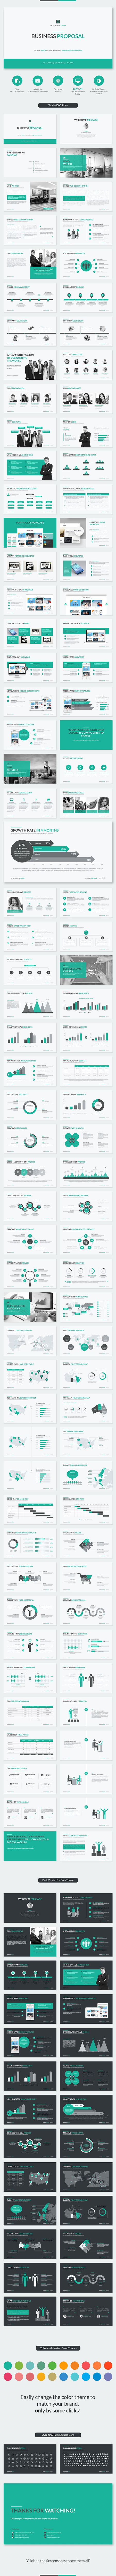 #Business Proposal Google Slides Template - #Google #Slides Presentation #Templates Download here: https://graphicriver.net/item/business-proposal-google-slides-template/16176124?ref=alena994